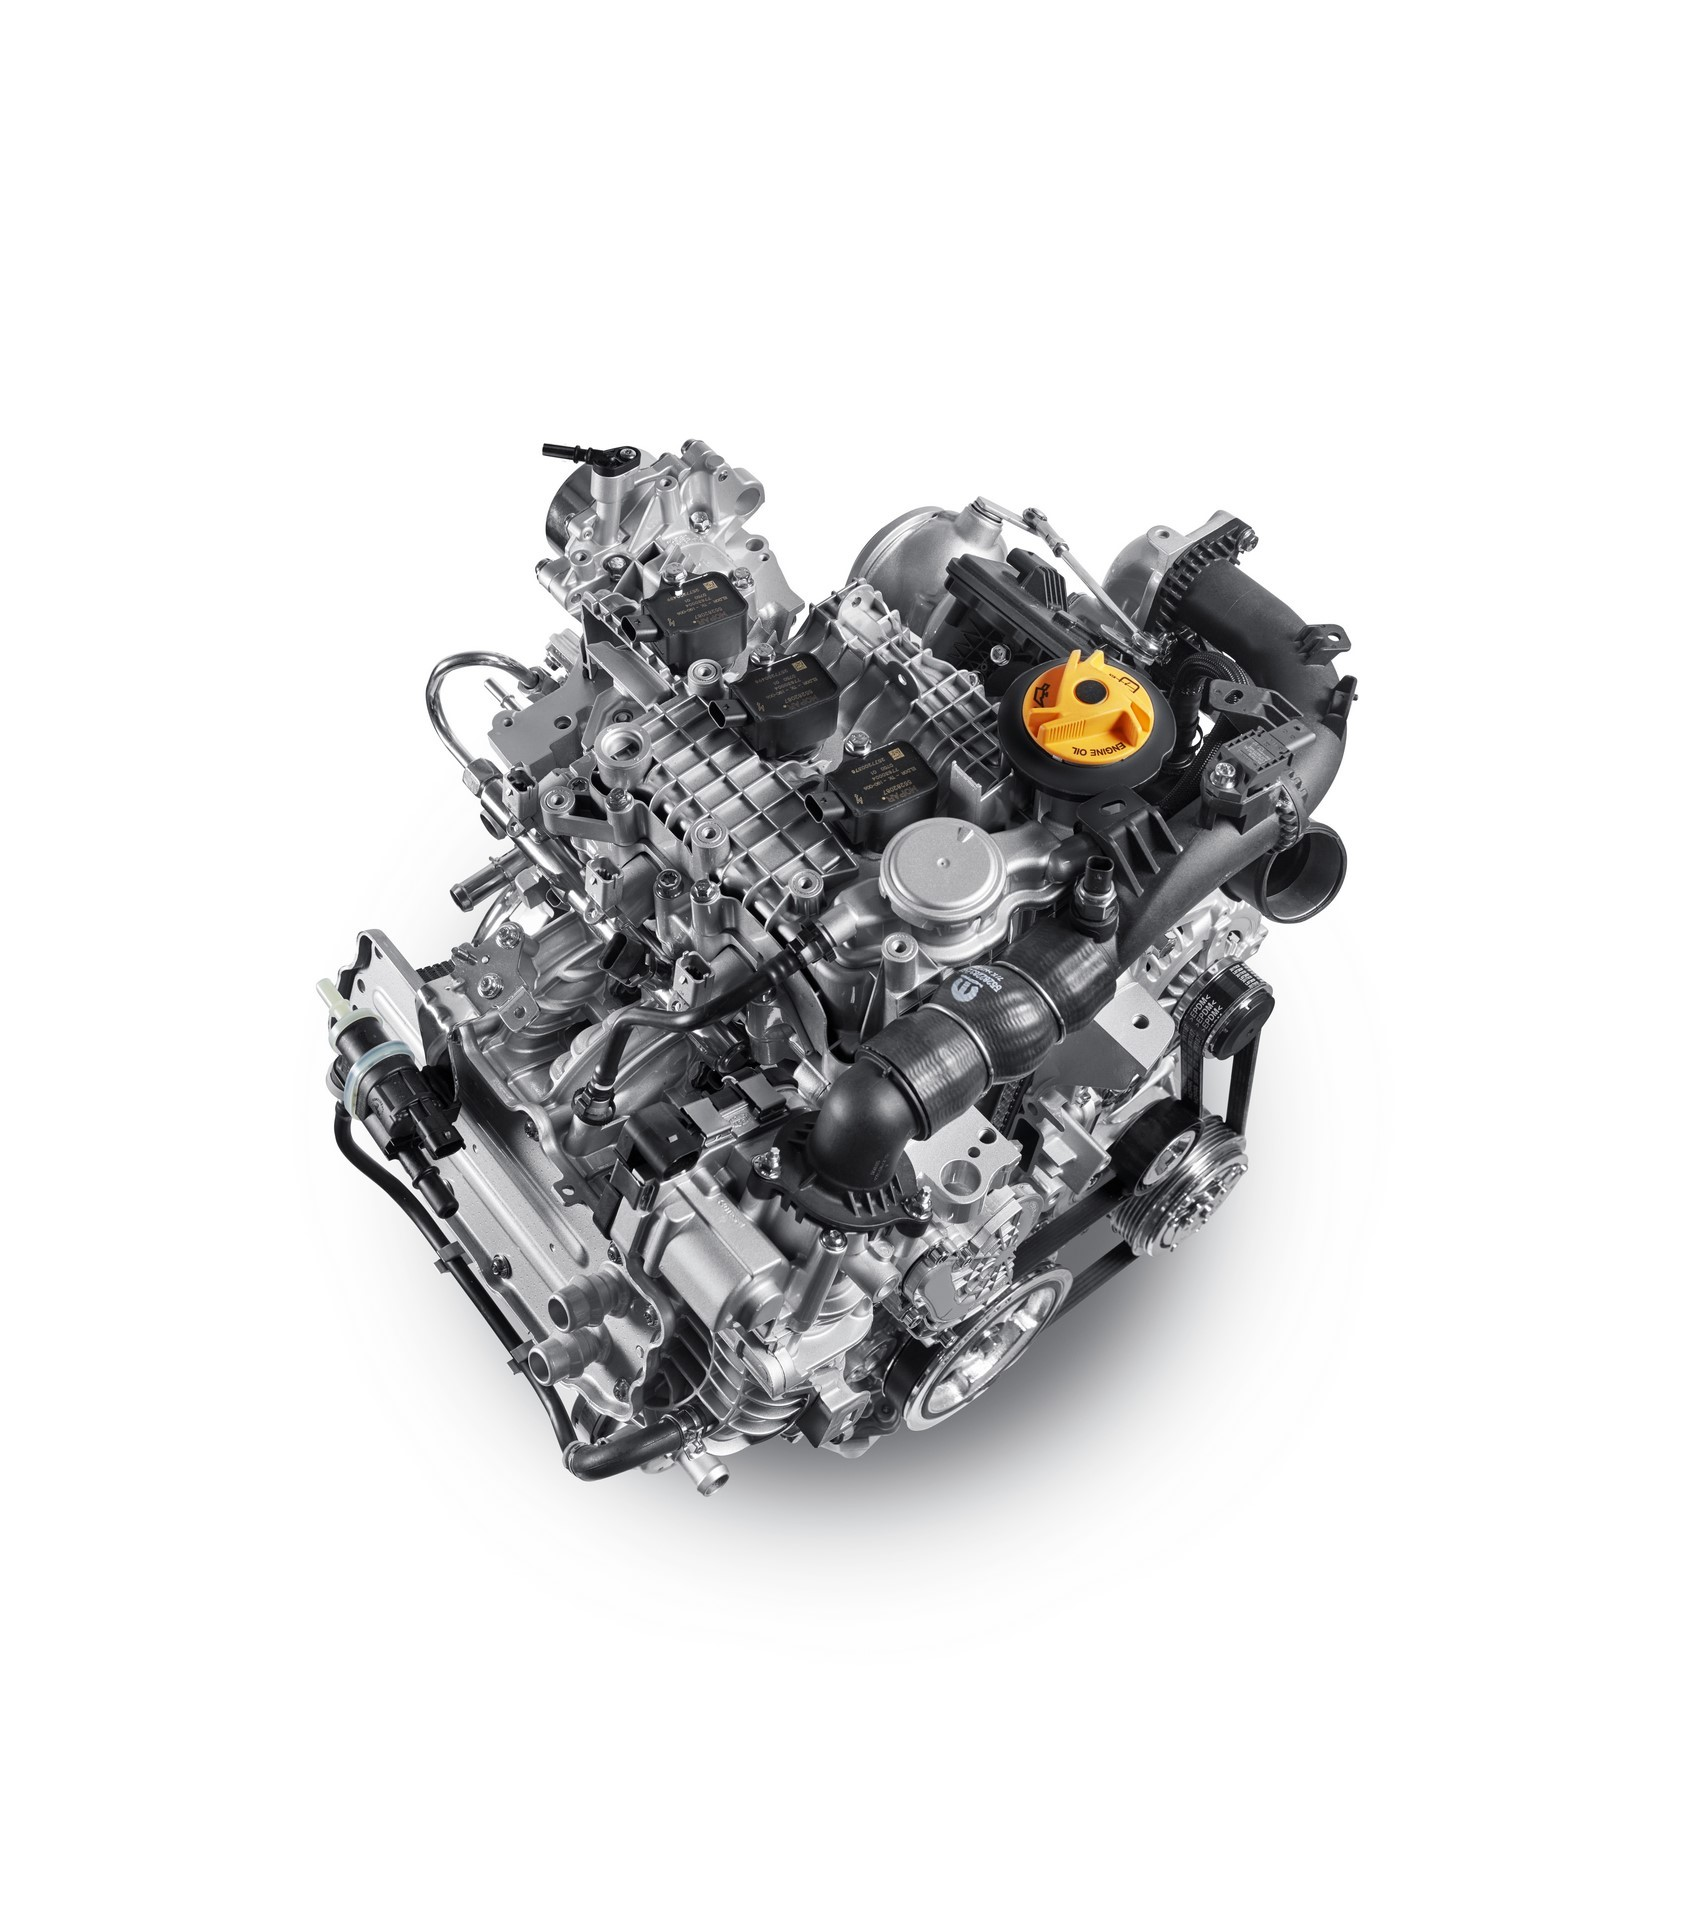 180828_Fiat_New-10L-Turbo-3-cylinder-120HP_19